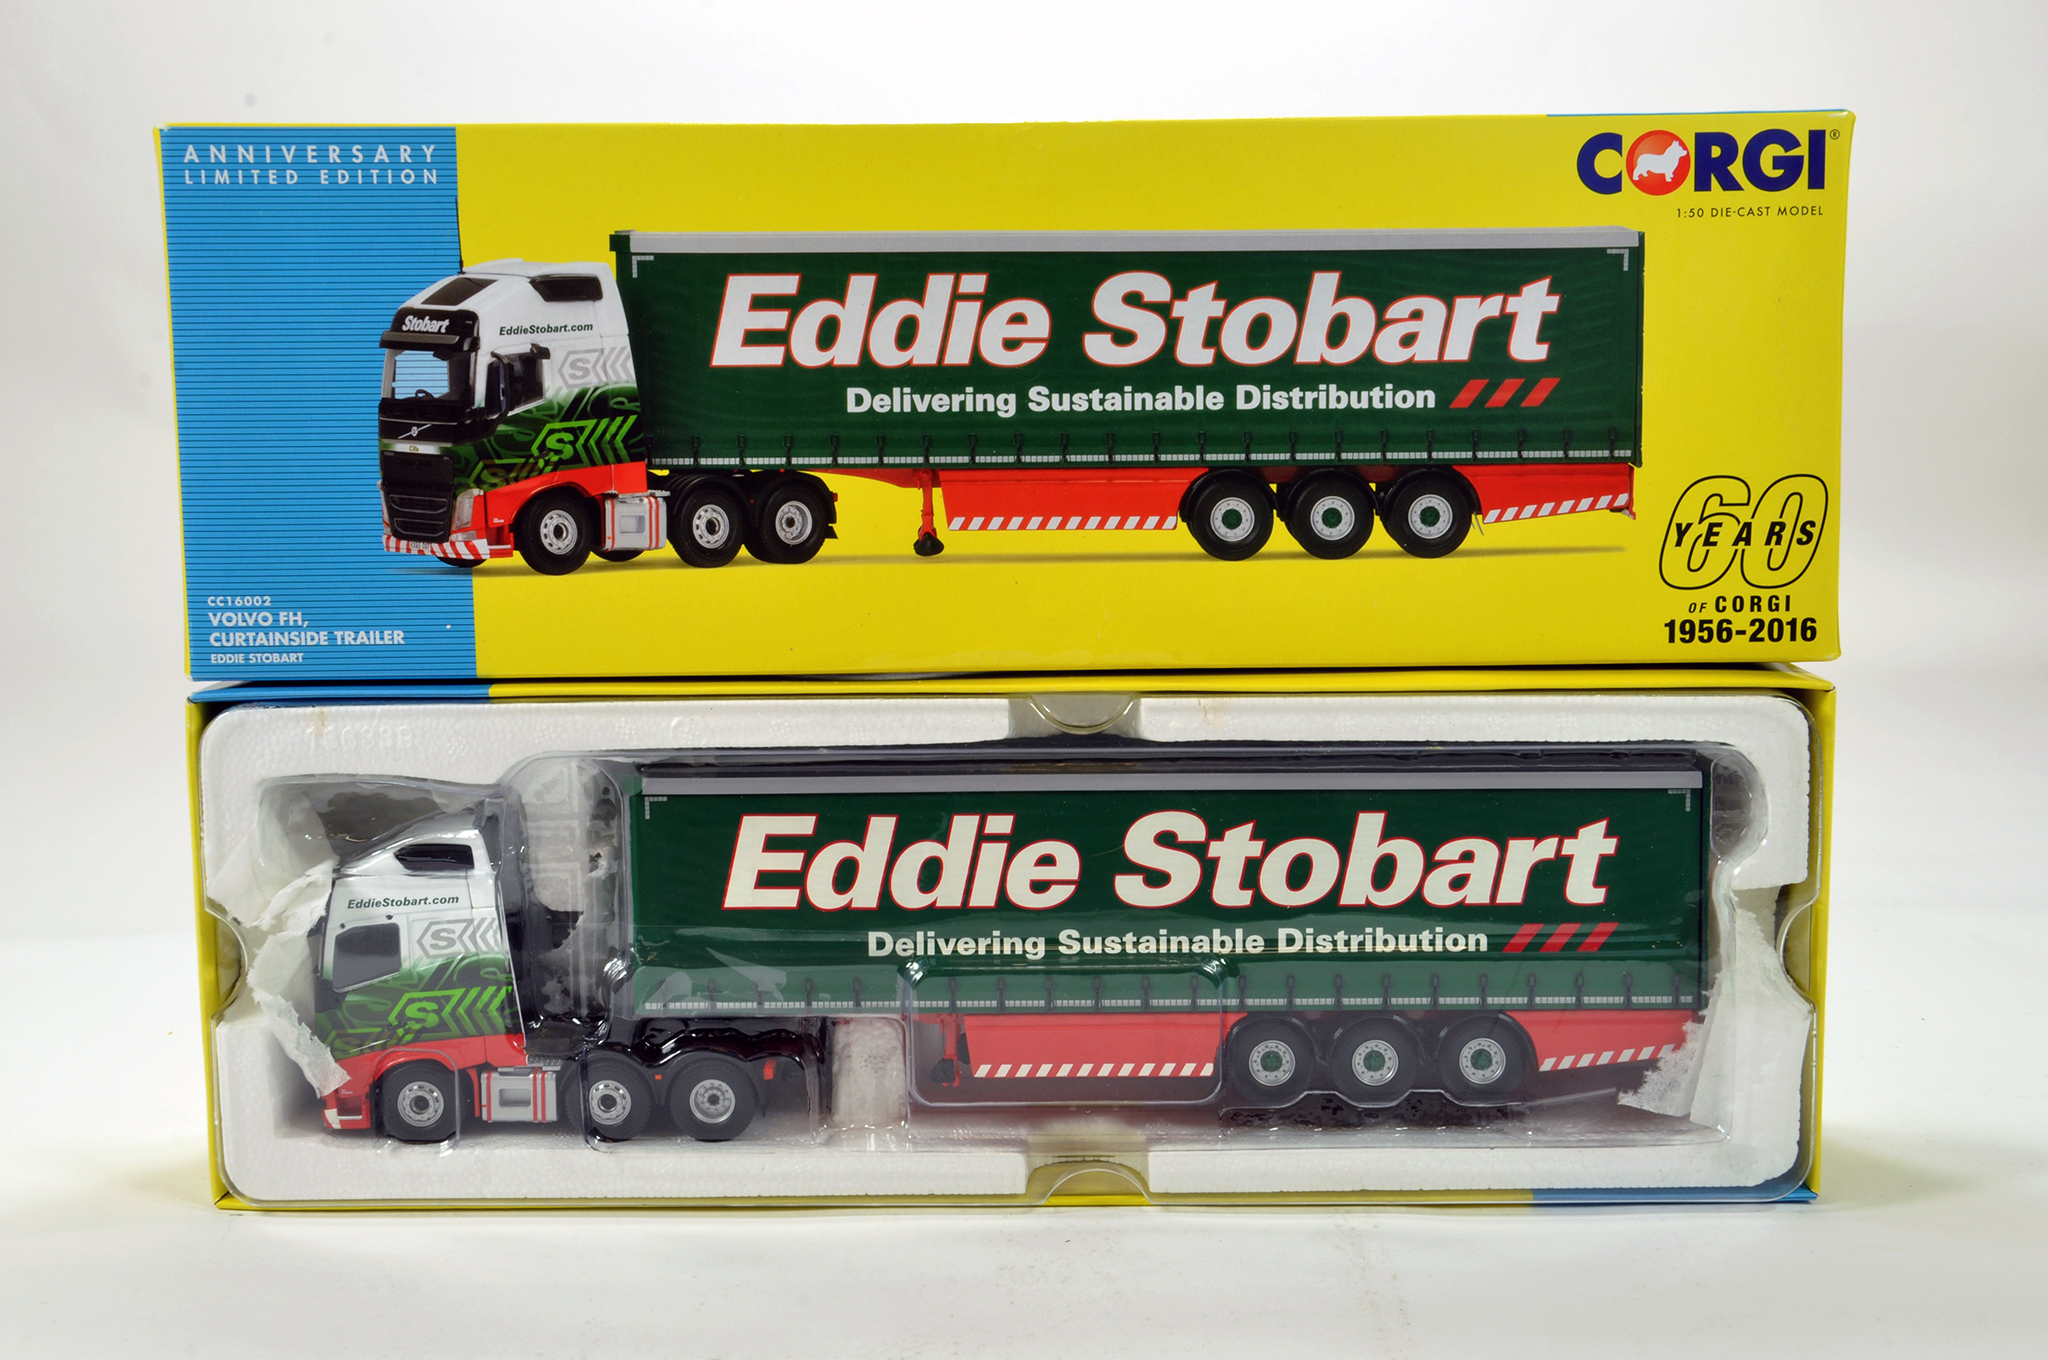 Lot 3 - Corgi 1/50 diecast truck issue comprising No. CC16002 Vovlo FH Curtainside Trailer in livery of